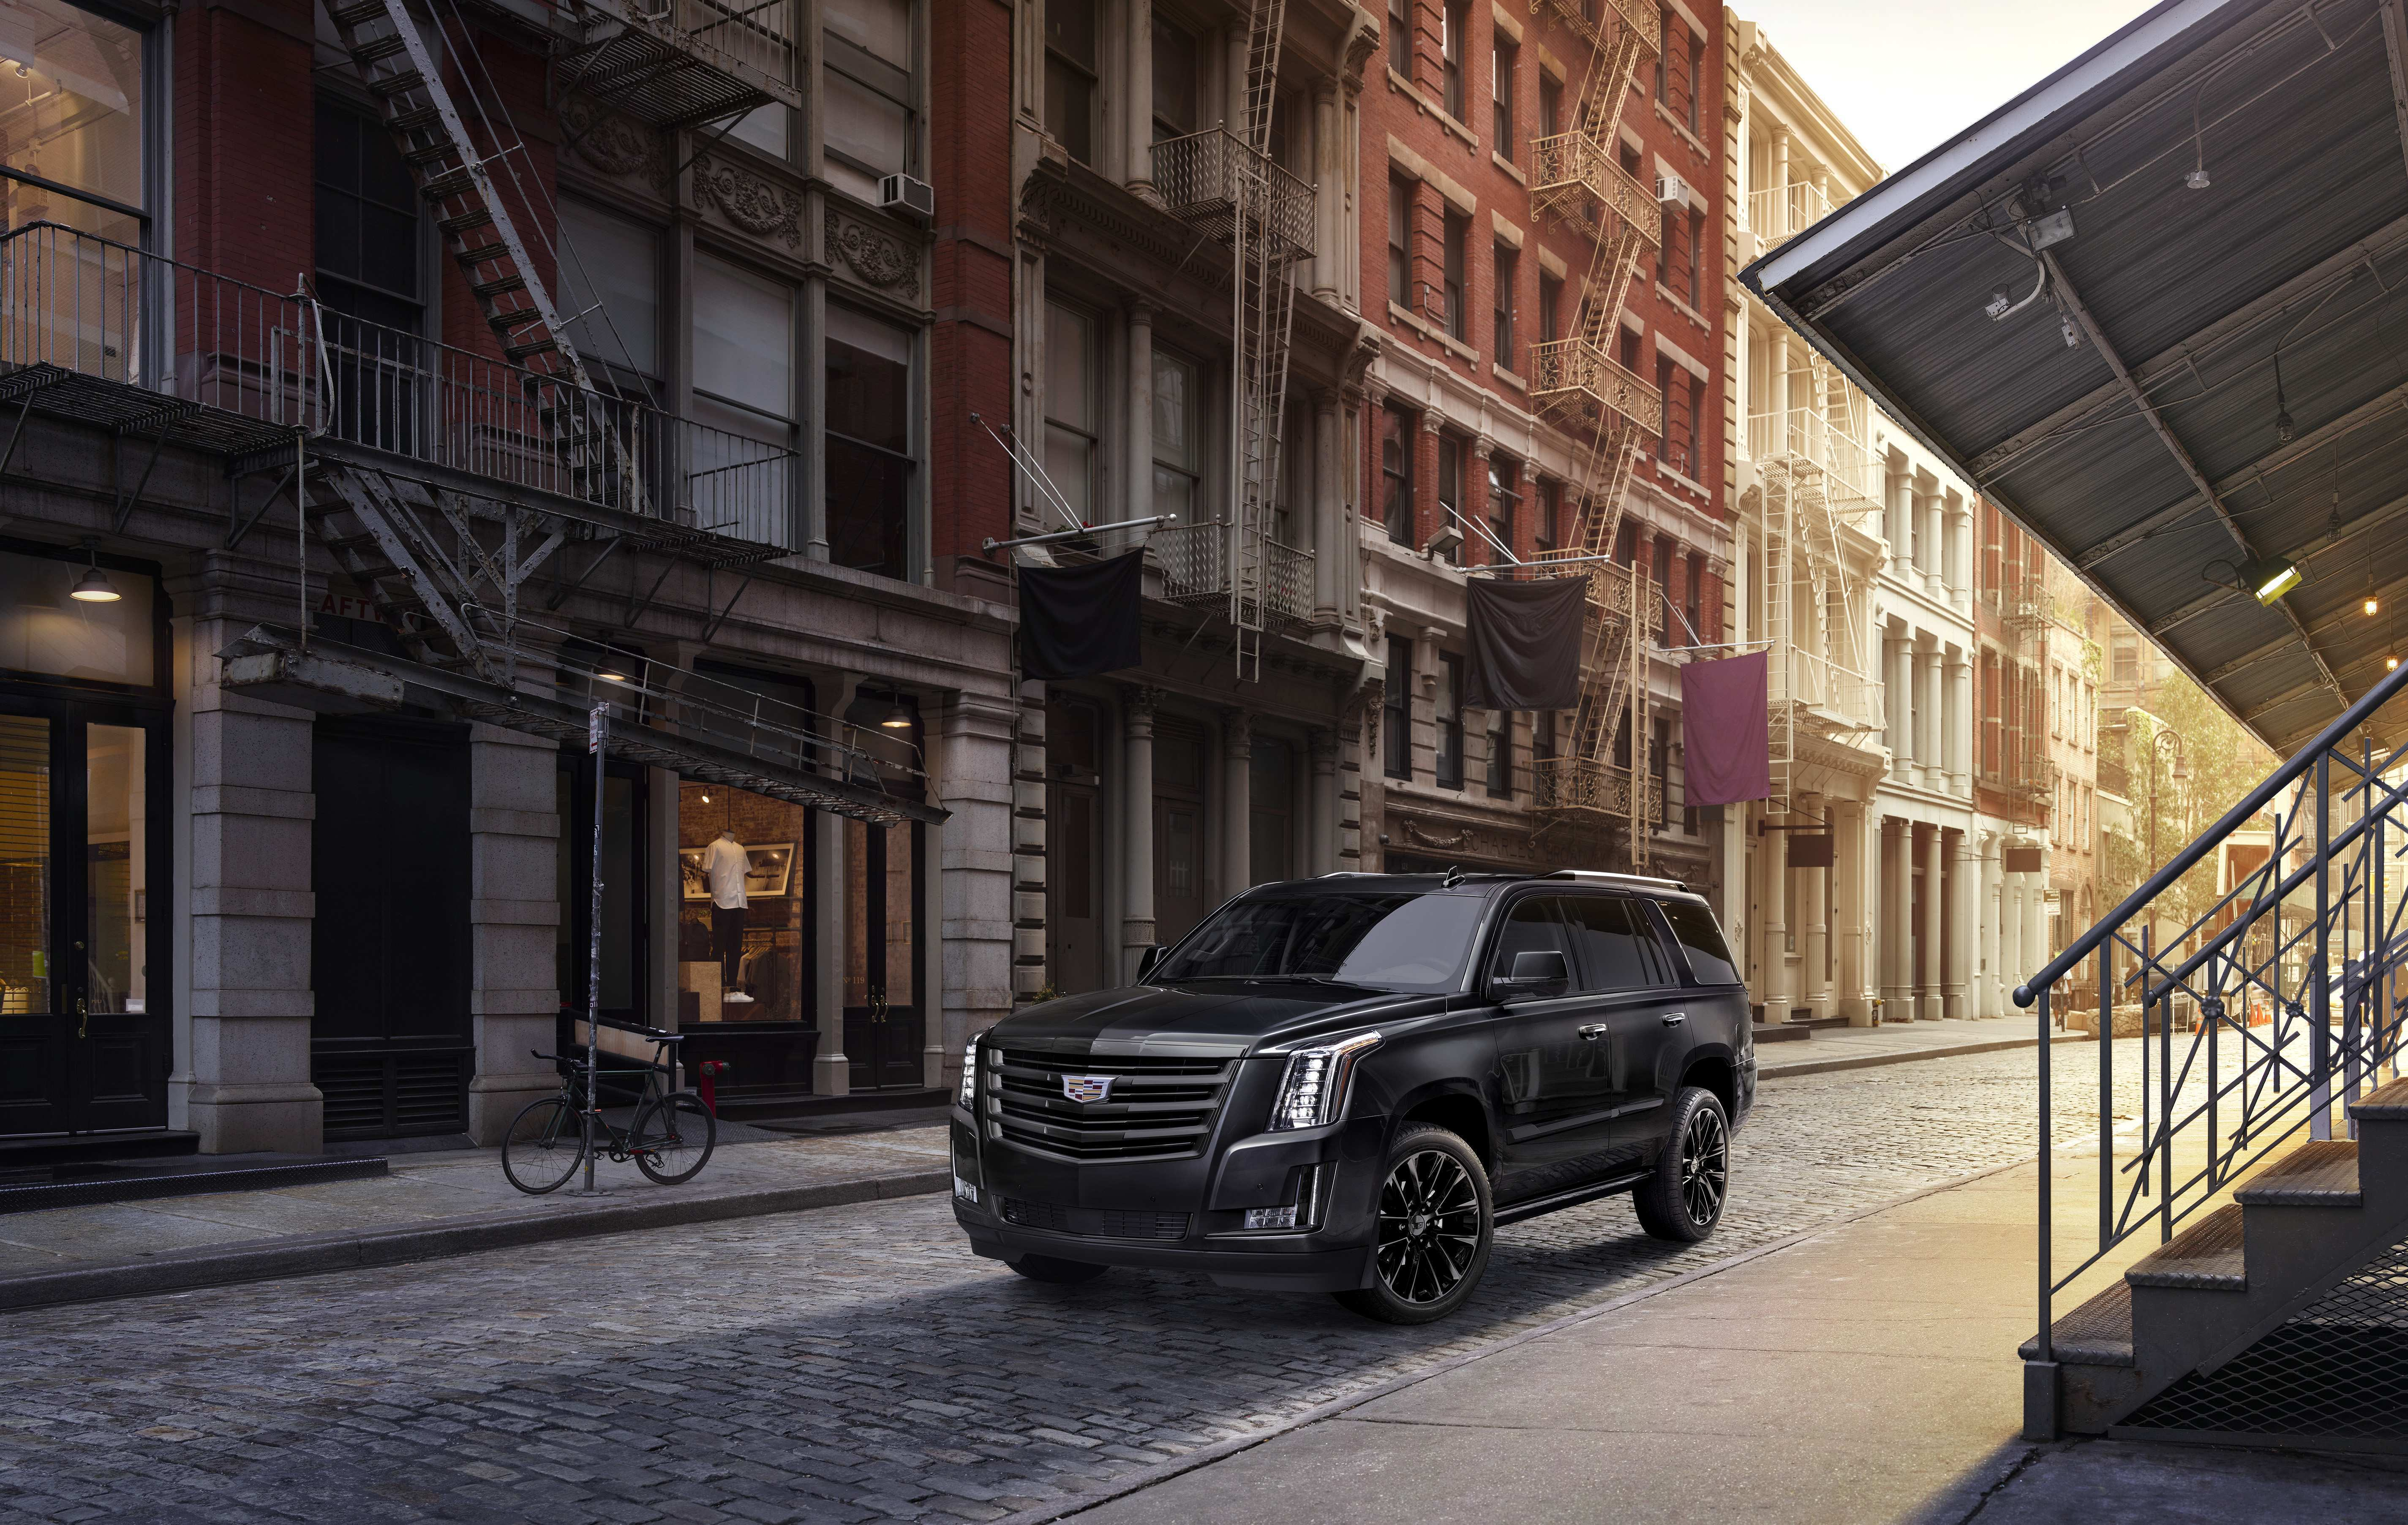 15 Gallery of The 2019 Cadillac Escalade Concept Performance Specs and Review by The 2019 Cadillac Escalade Concept Performance